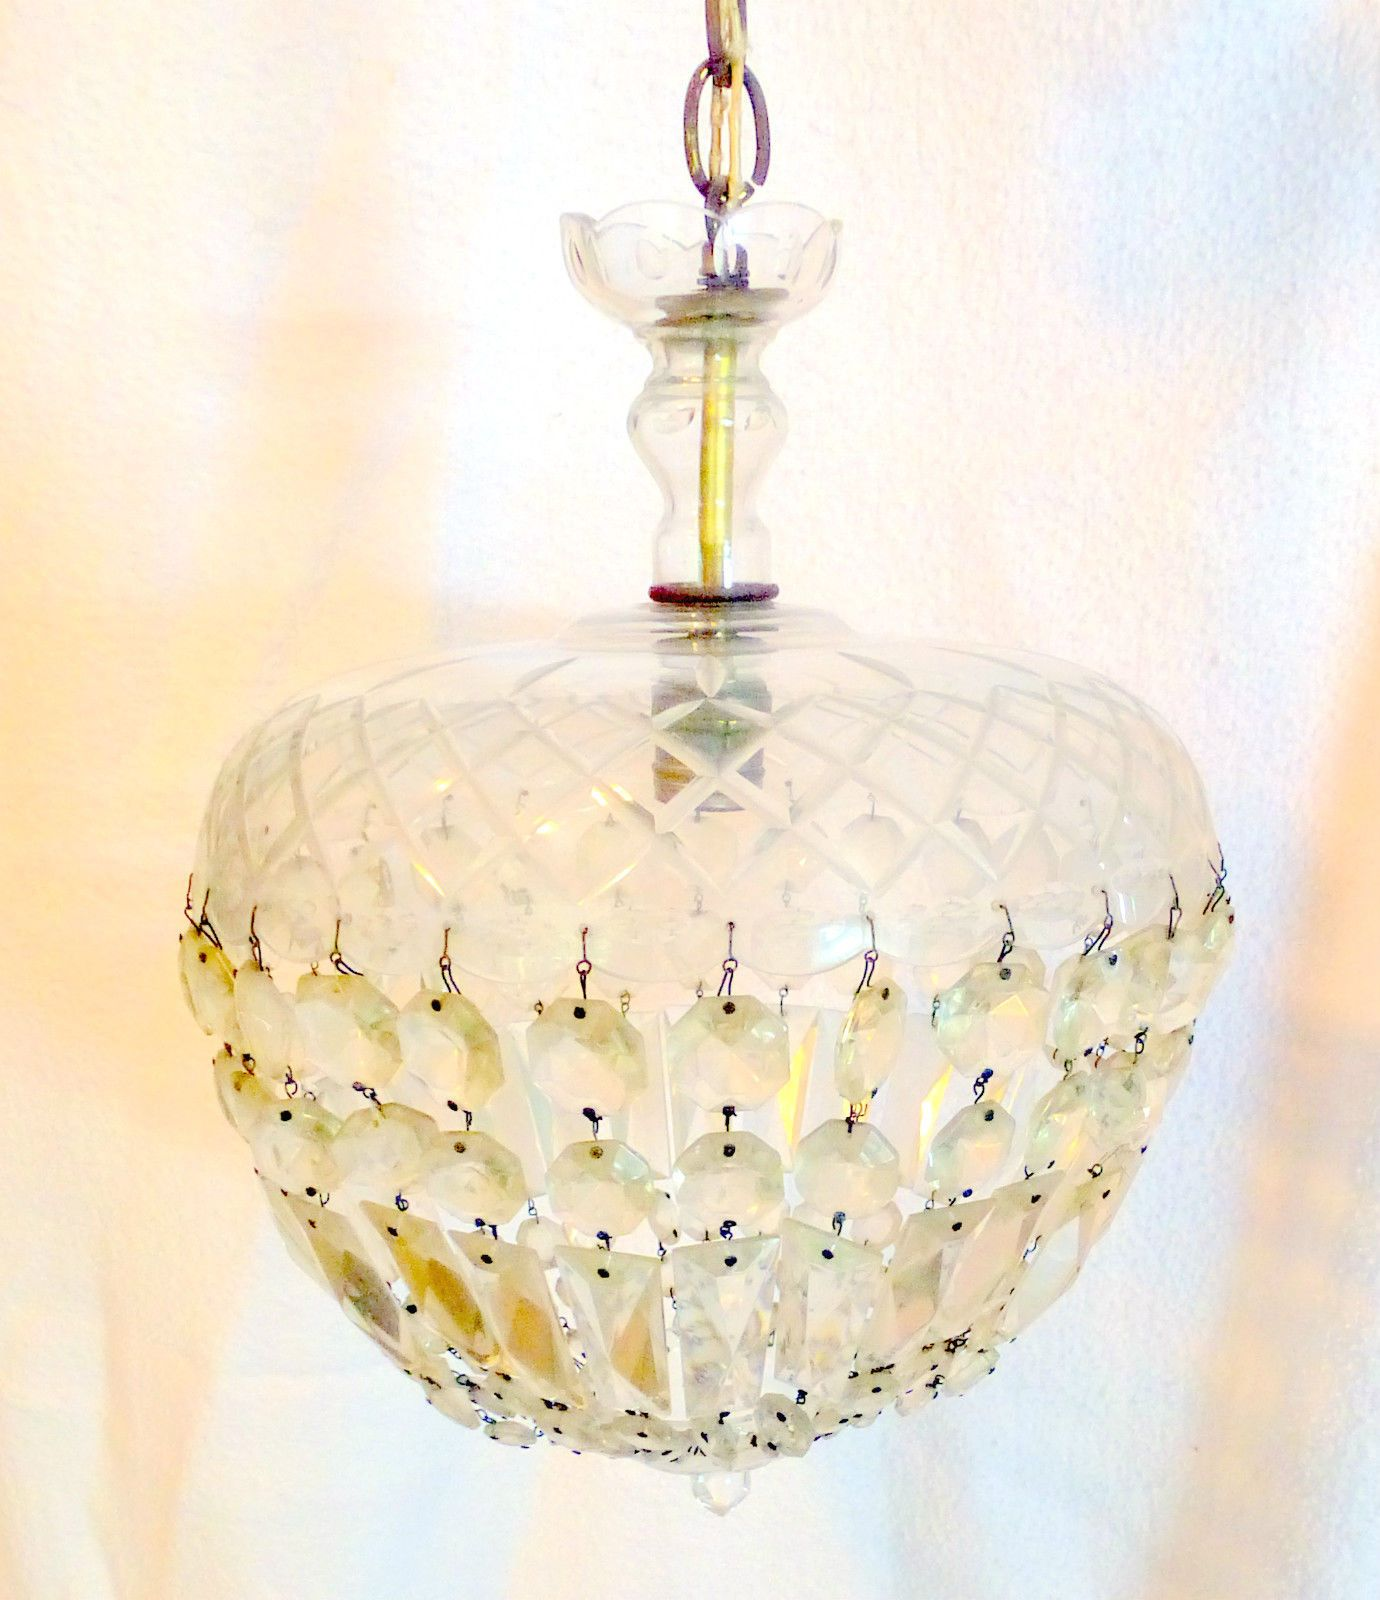 Ceiling light fixture basket chandelier crystal prisms acorn shape ceiling light fixture basket chandelier crystal prisms acorn shape vtg 1940 60 arubaitofo Images